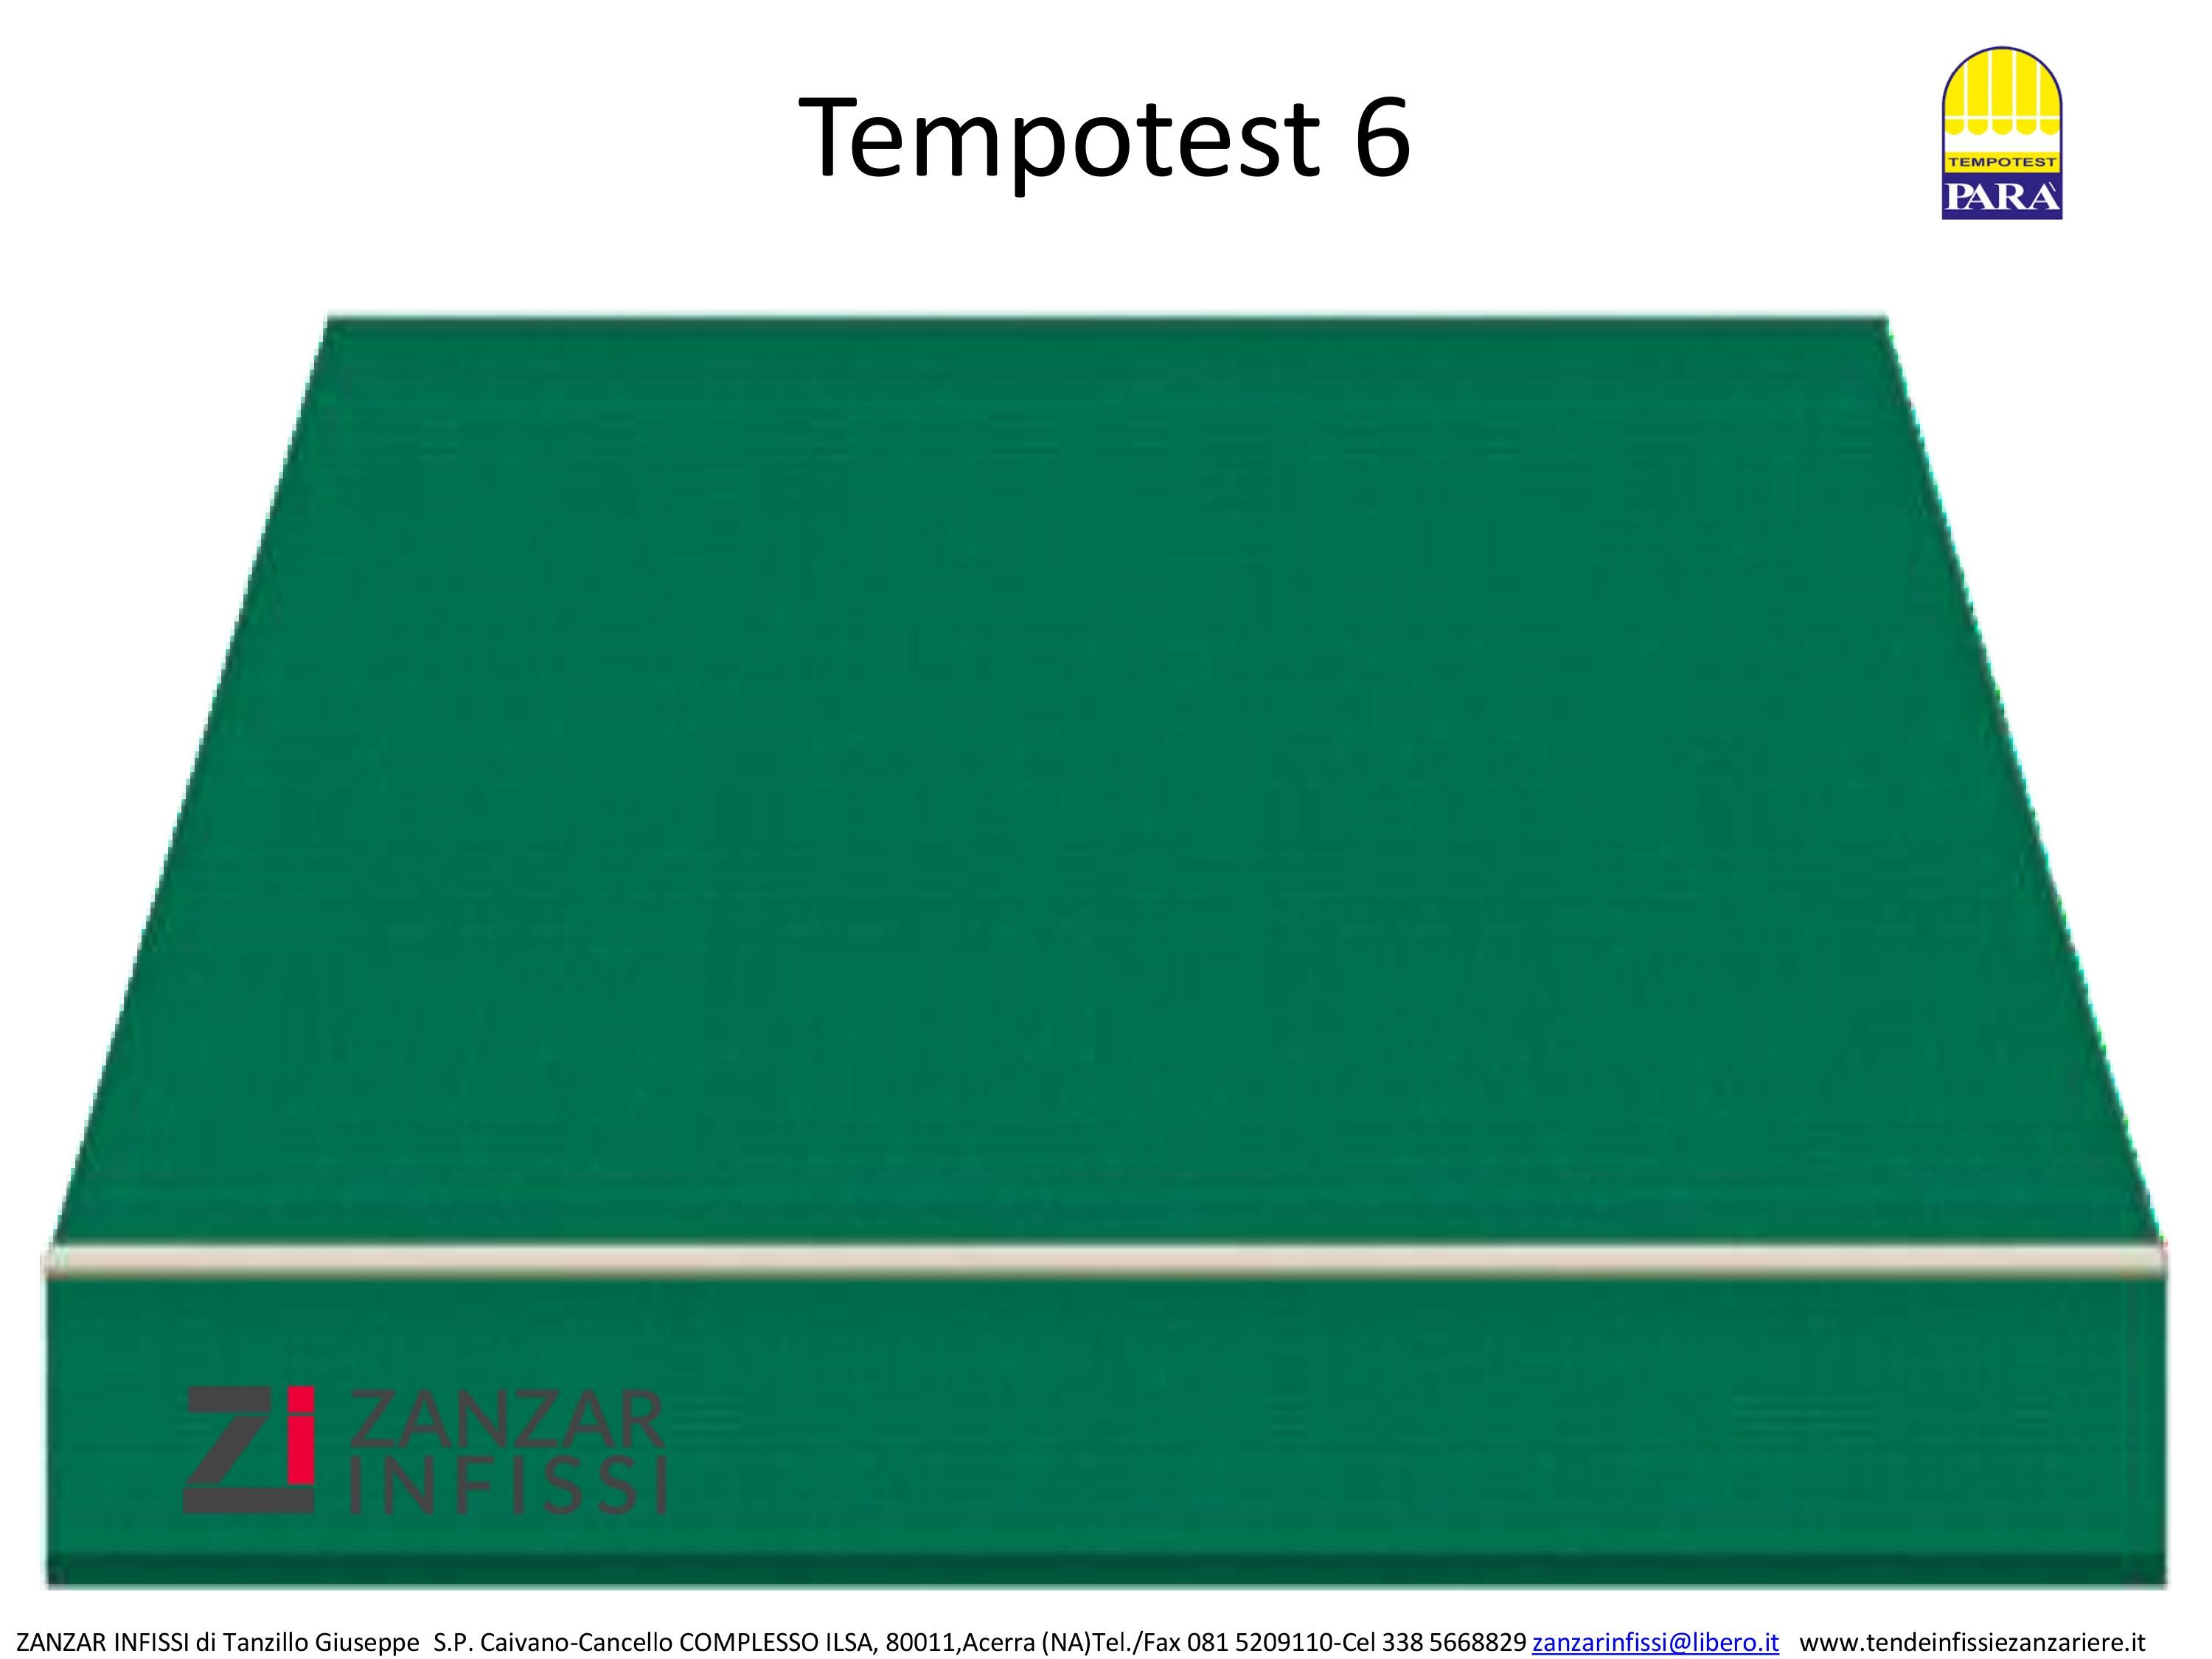 Tempotest 6